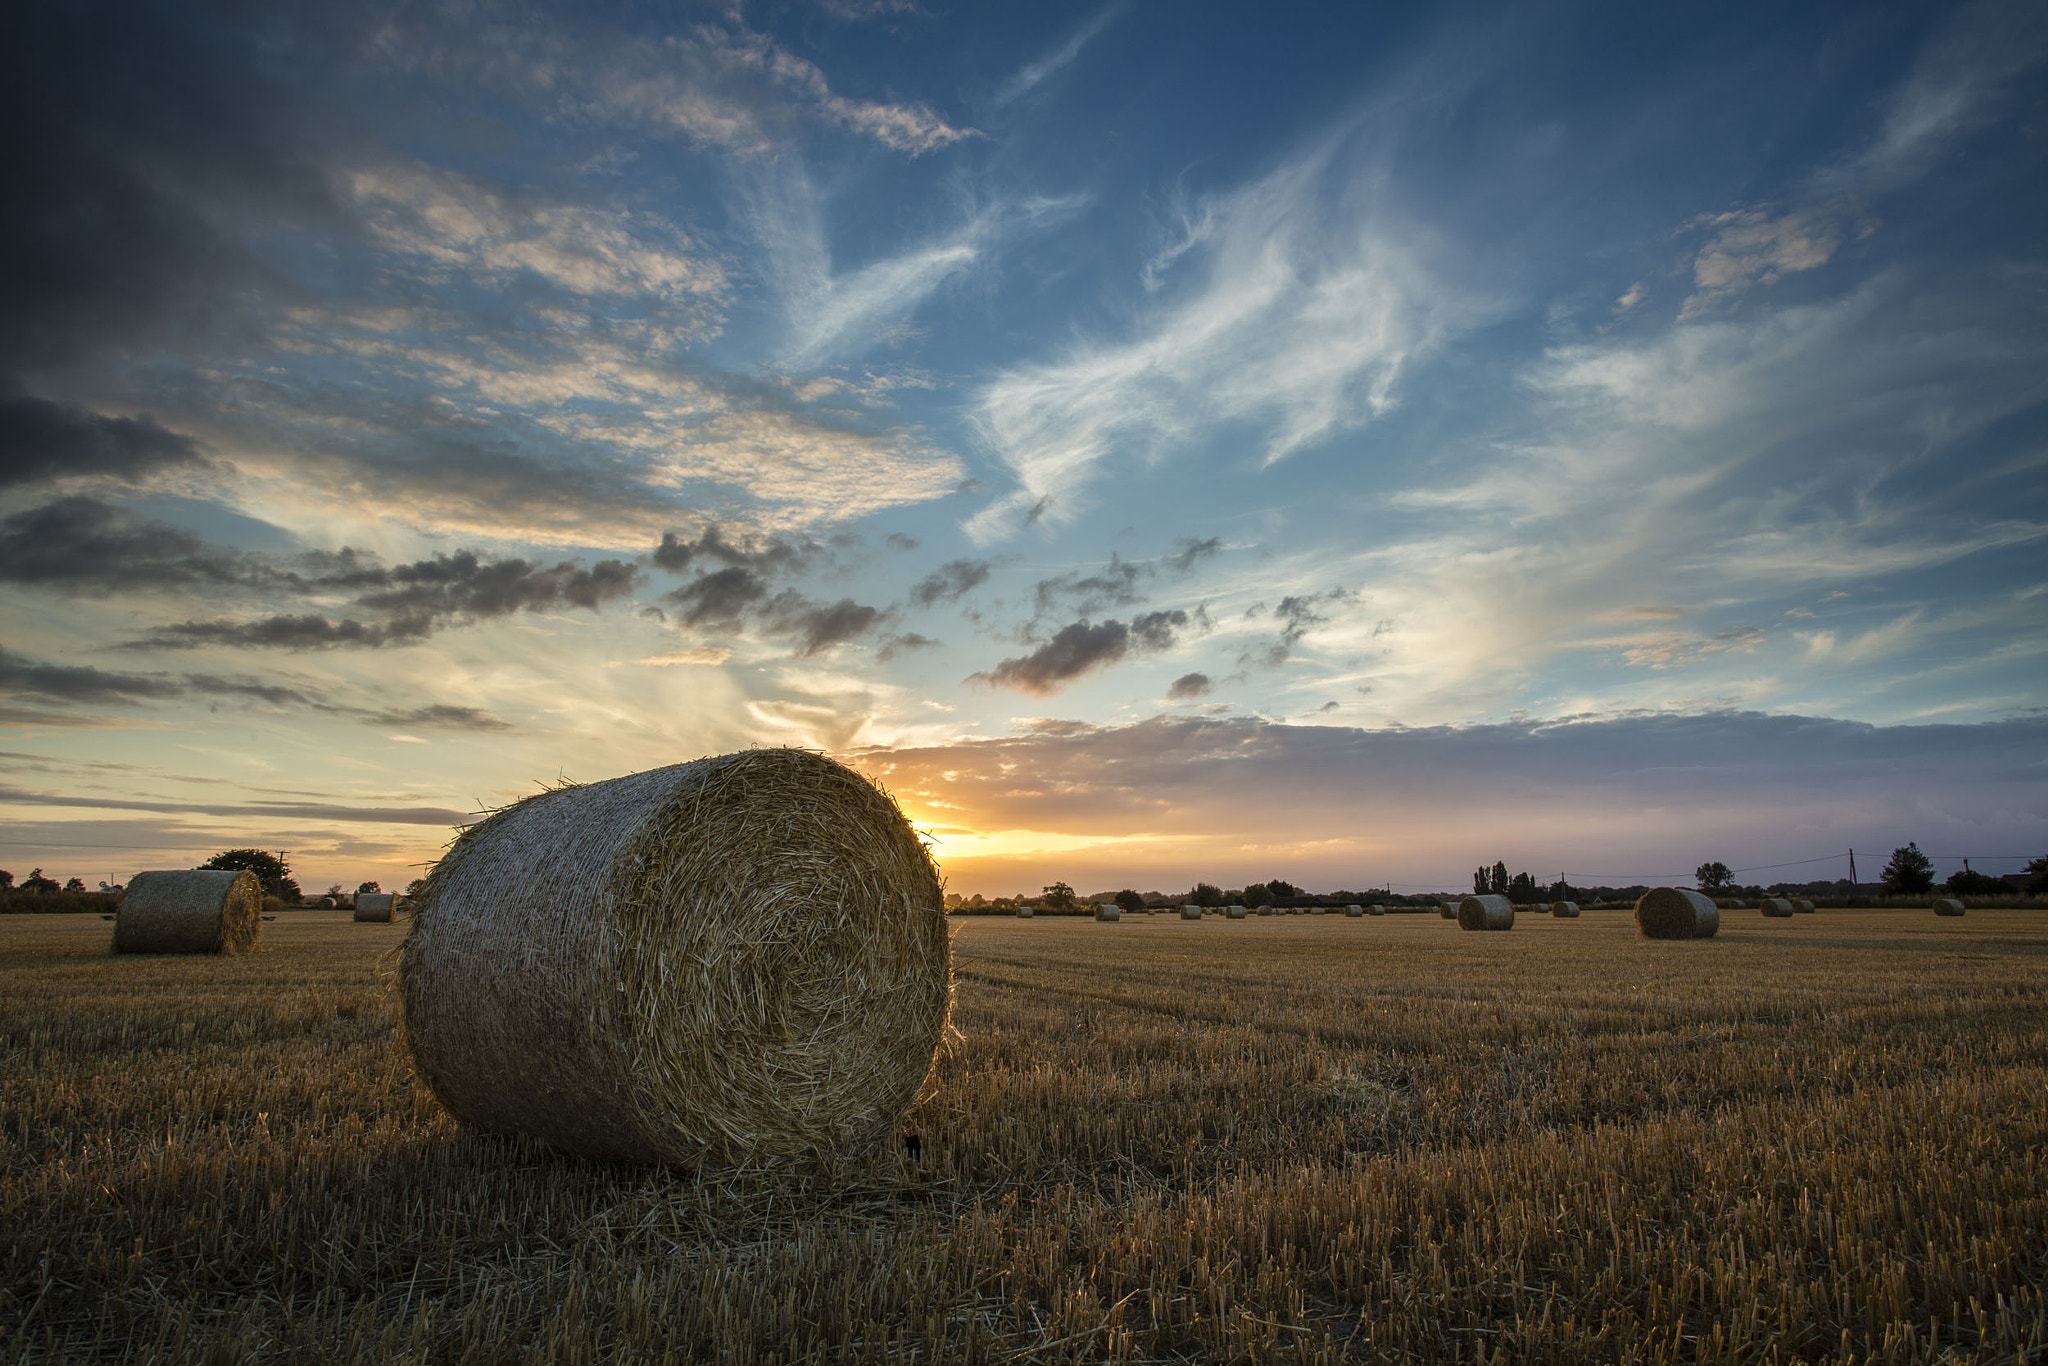 Photograph Harvest by Gail Sparks on 500px